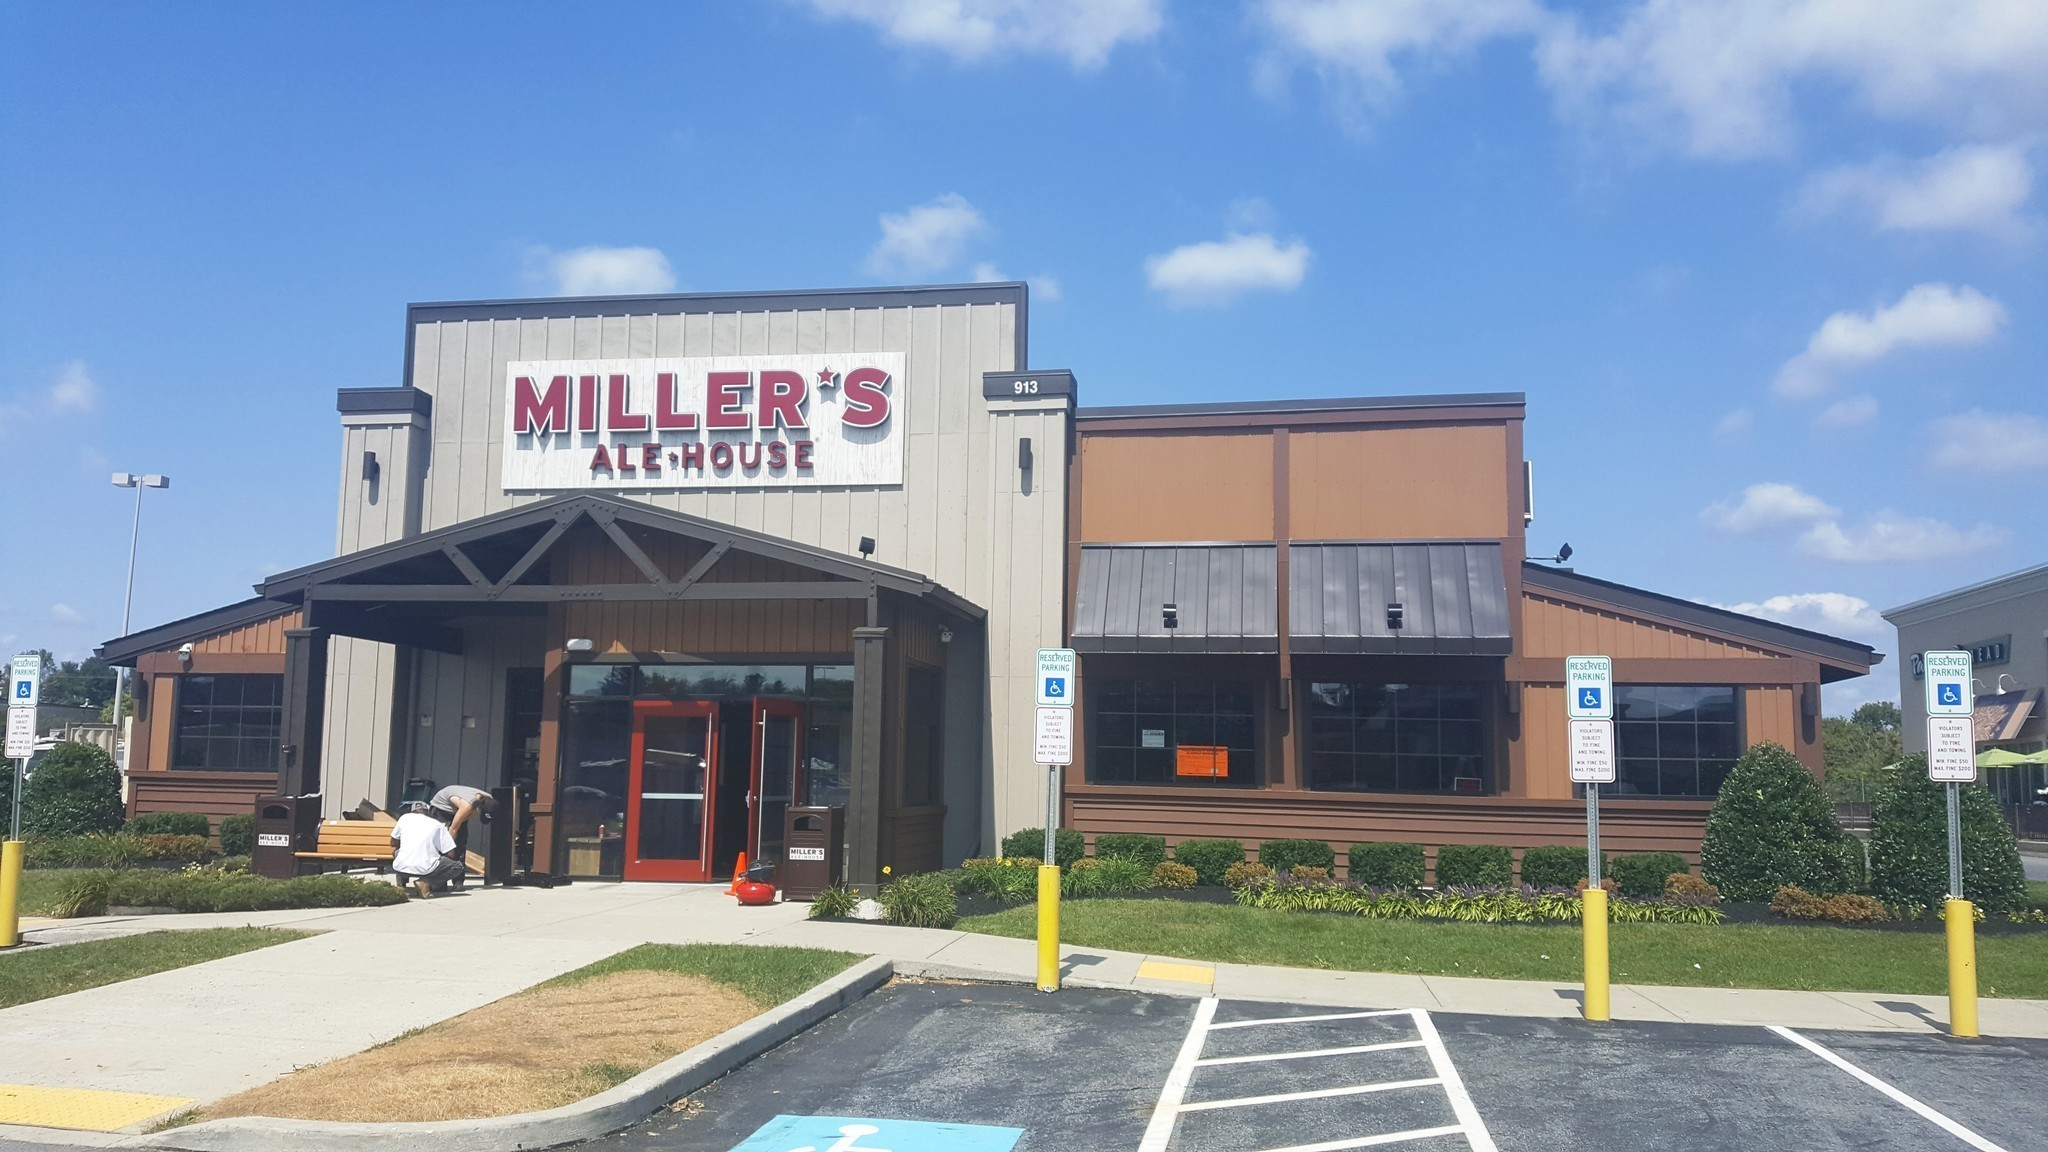 Lehigh Valleyu0027s First Milleru0027s Ale House To Open Next Week In Airport  Center   The Morning Call